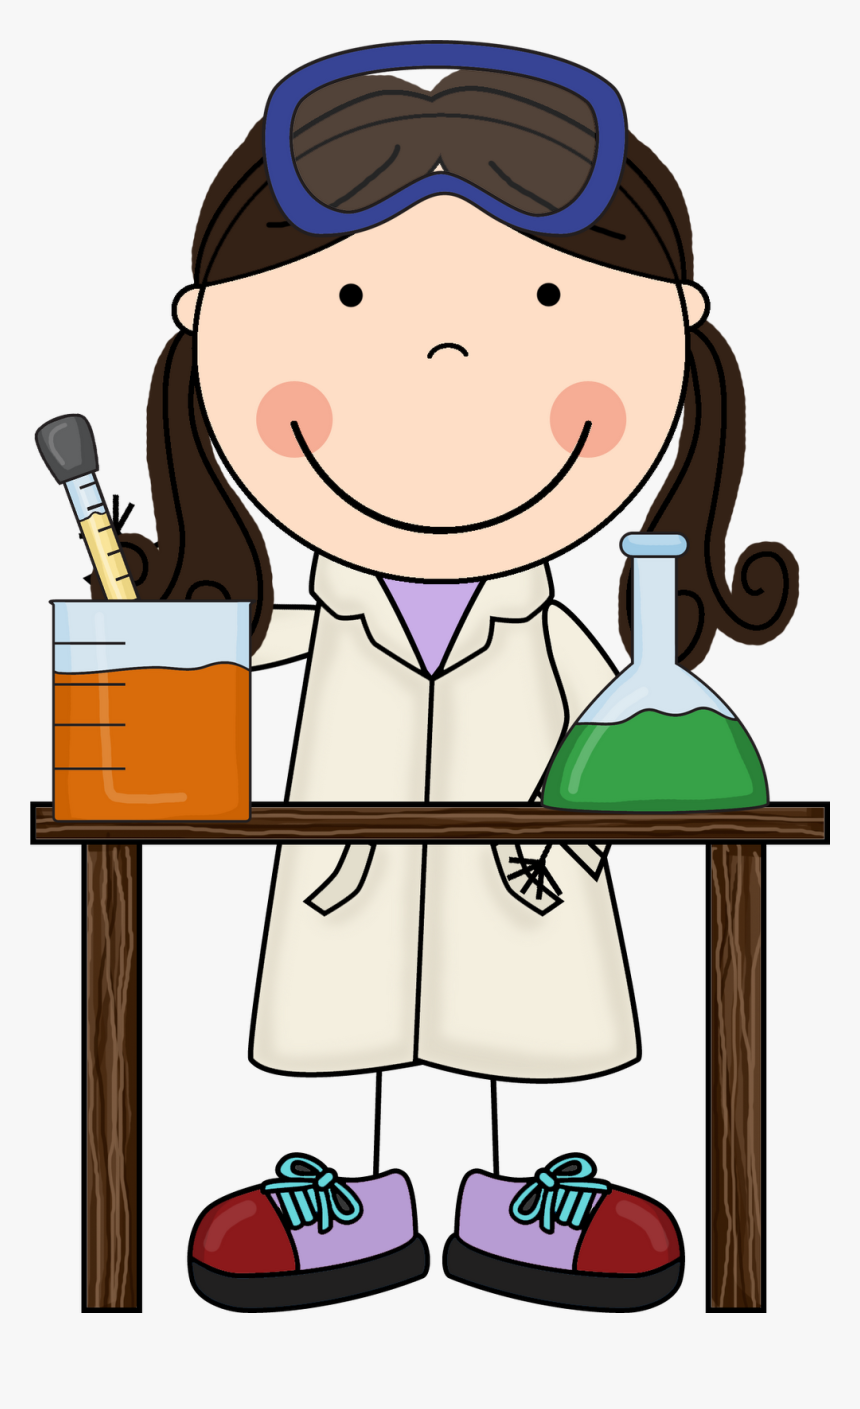 Dna Structure Clipart Science Conclusion - Scientist Clipart, HD Png Download, Free Download